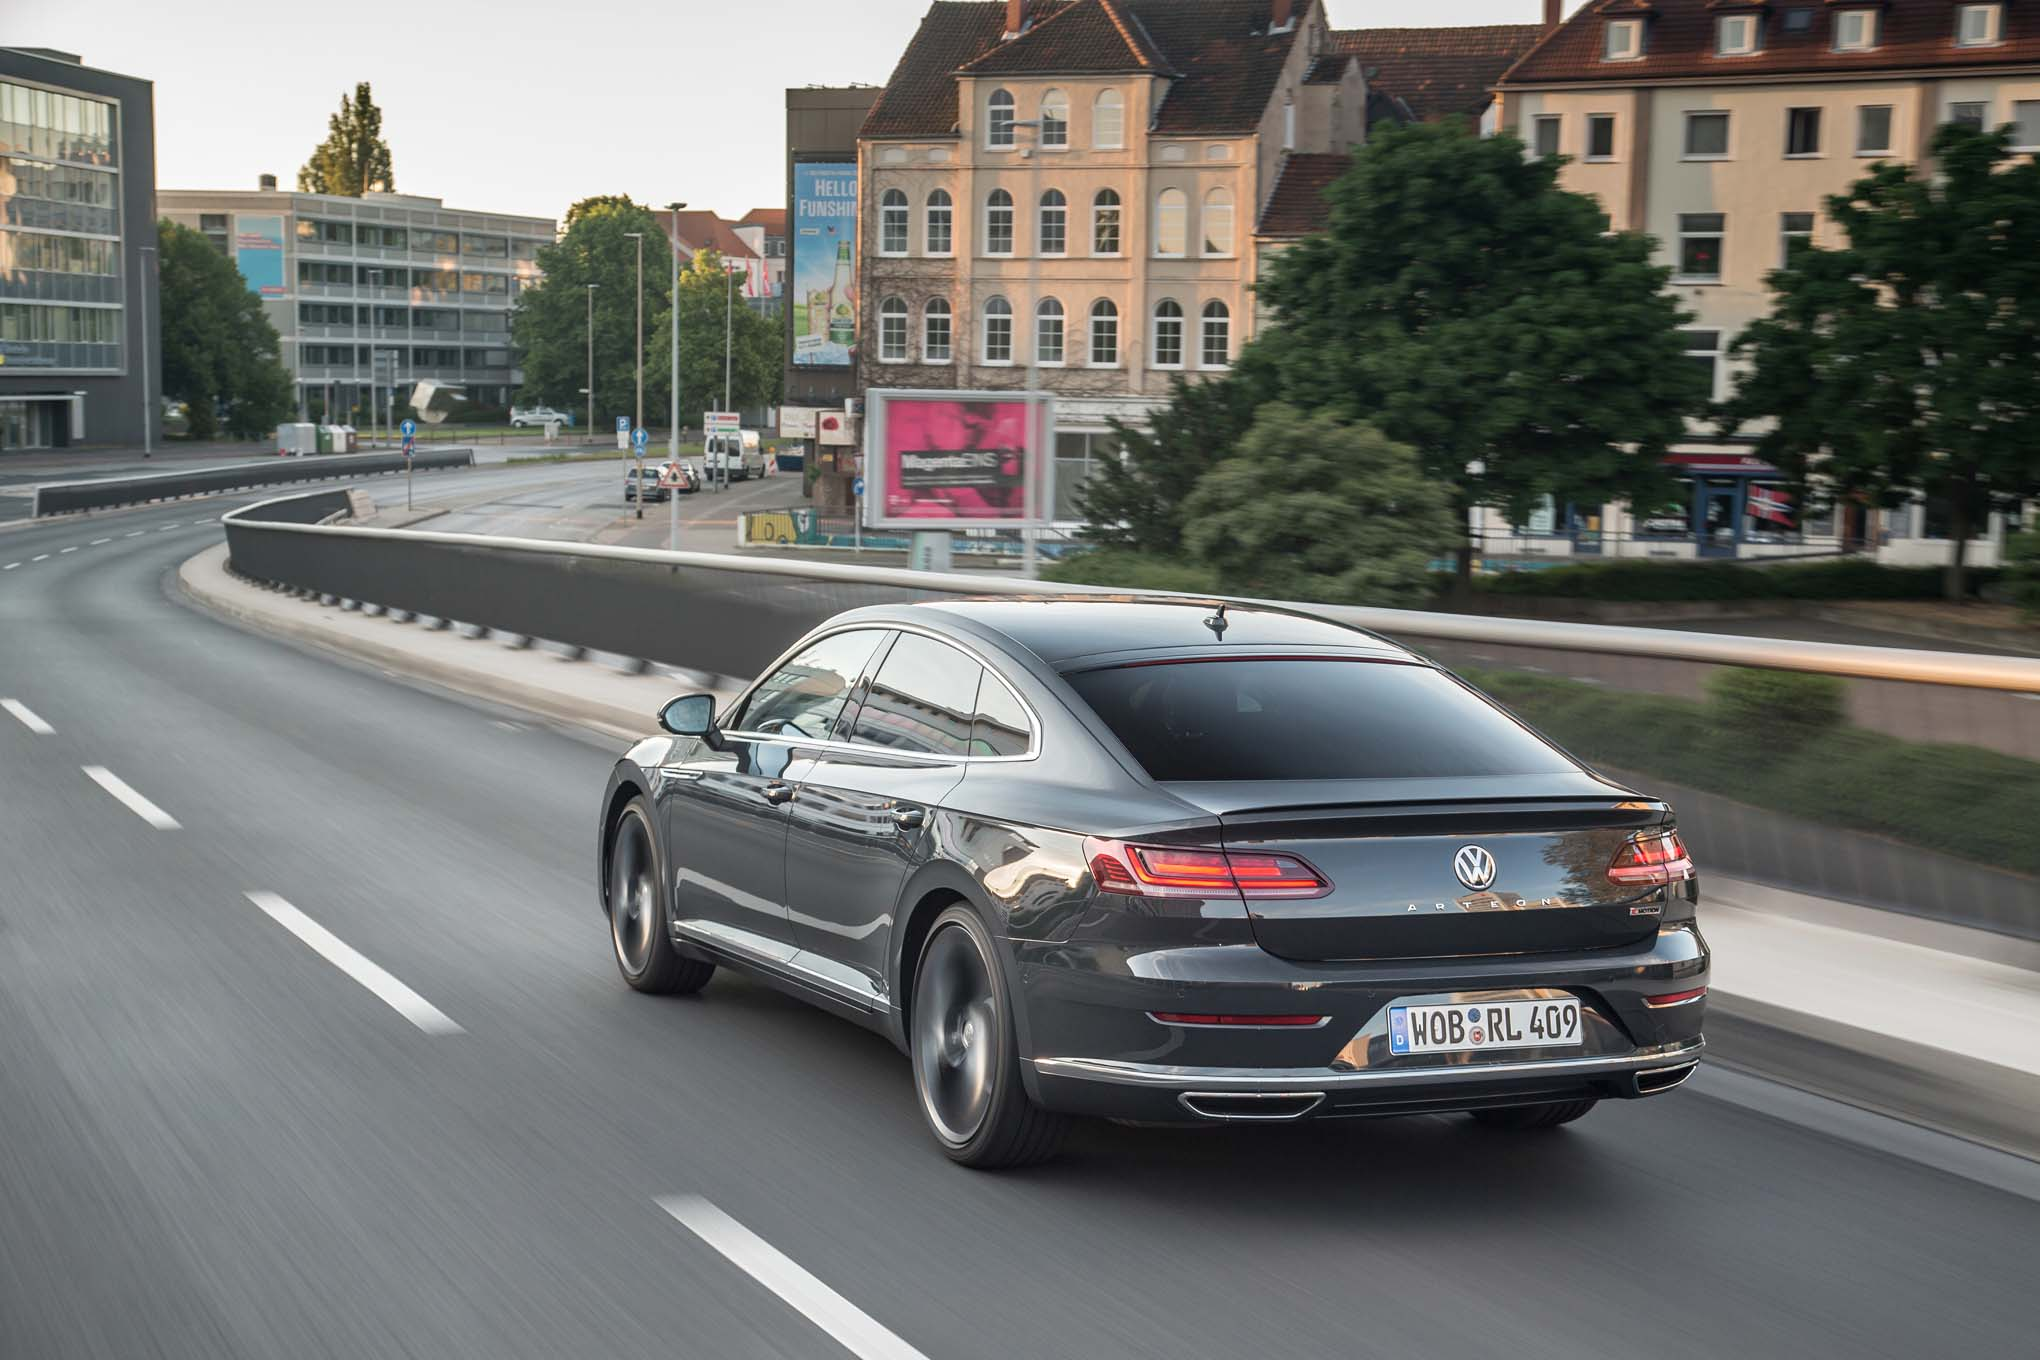 2019 Volkswagen Arteon R Line Rear Three Quarter In Motion 03 1